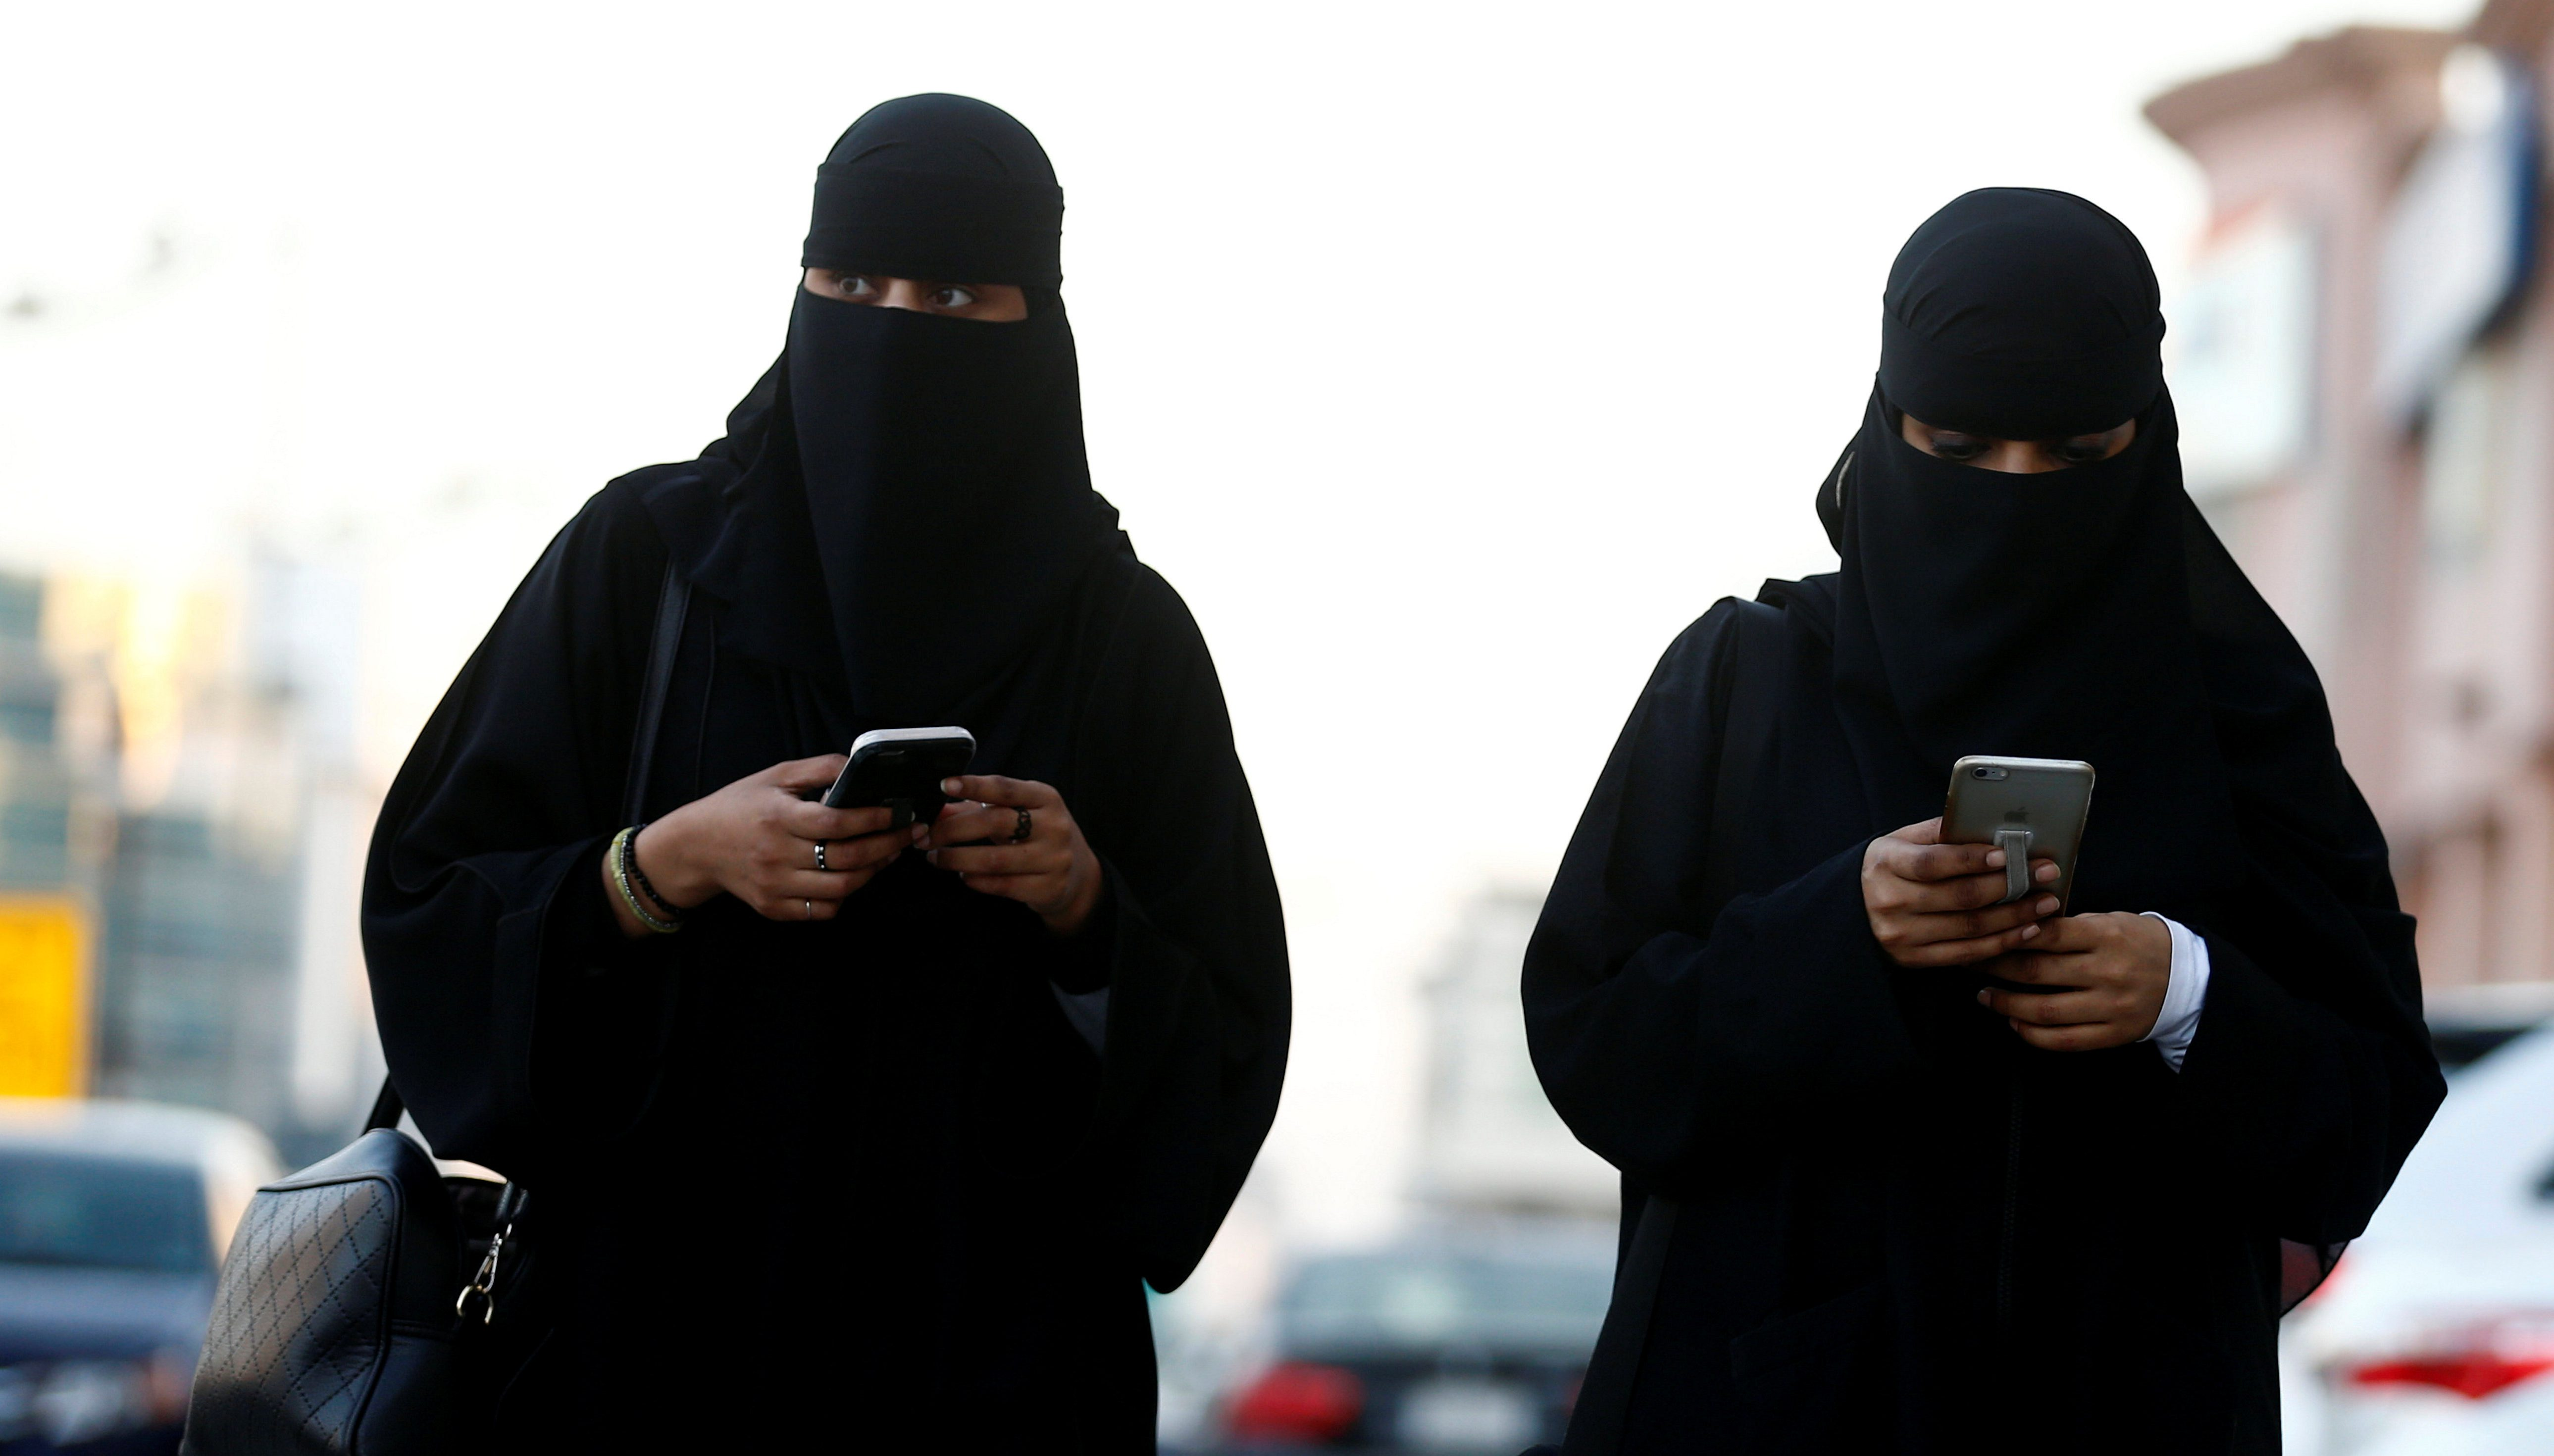 tech companies have questions about women in Saudi Arabia